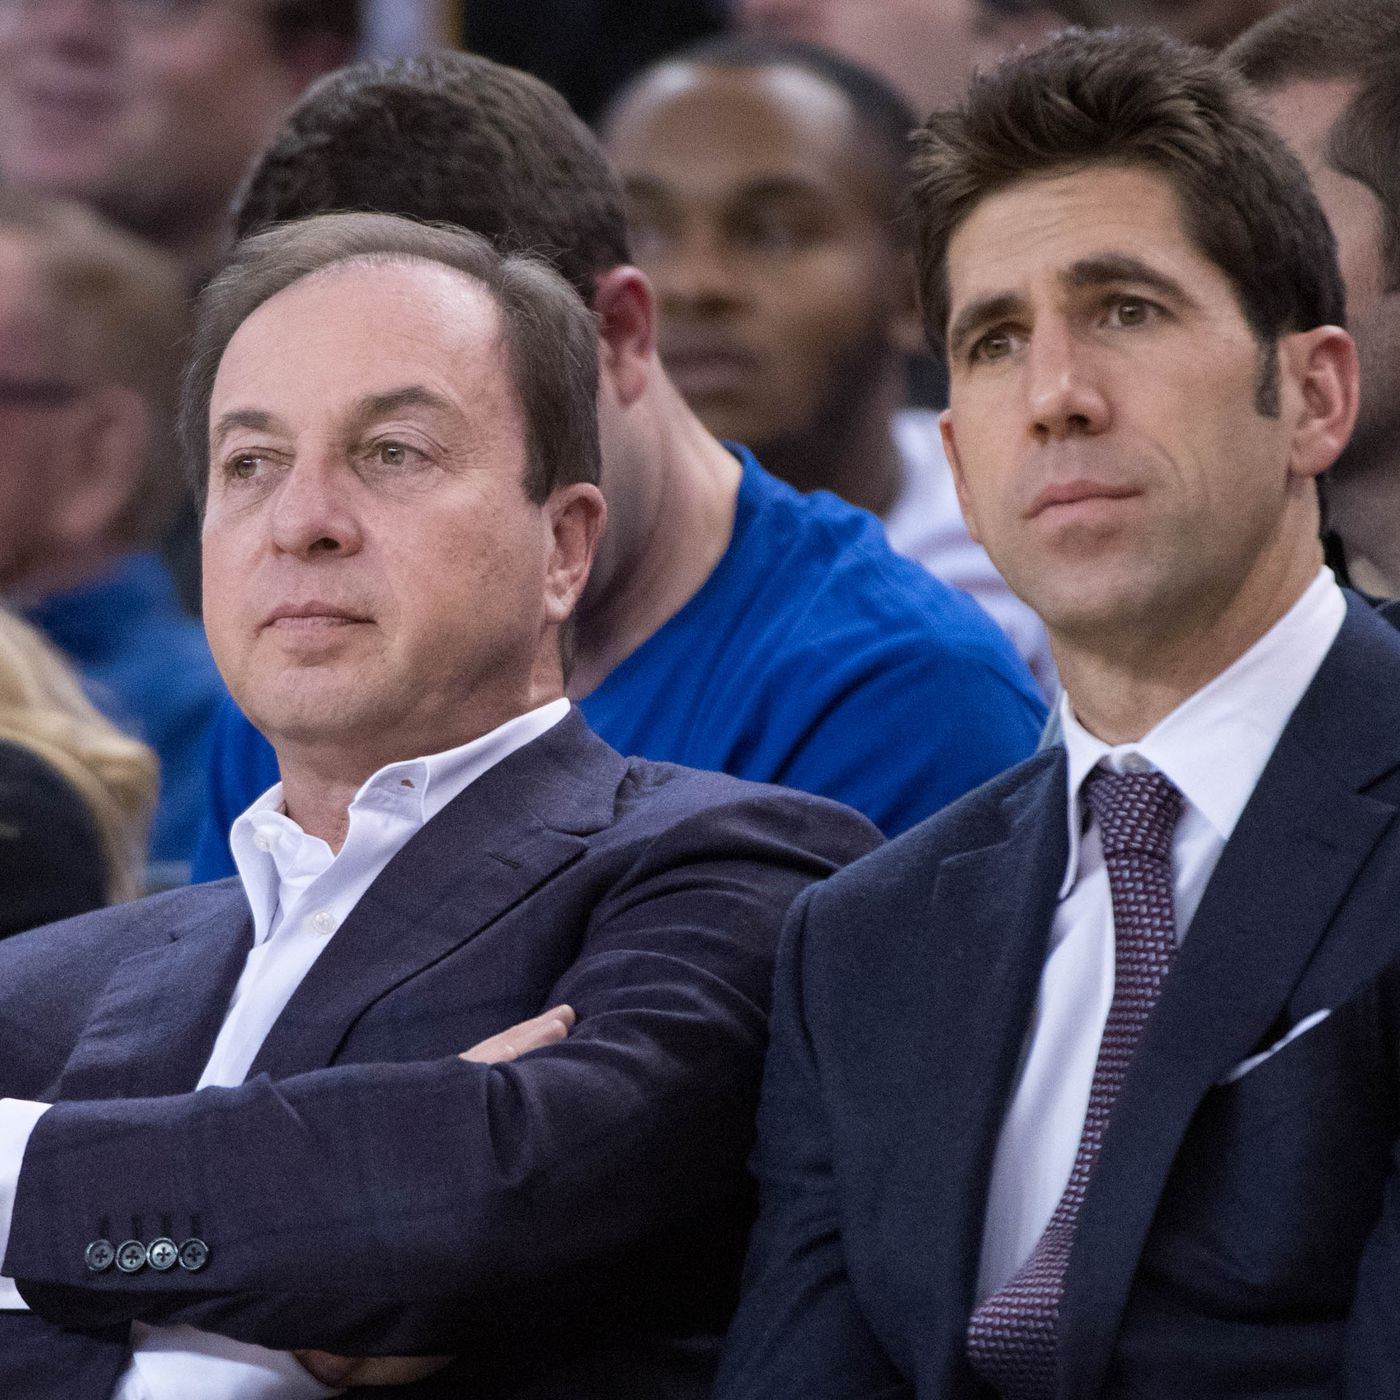 NBA Free Agency: The Warriors may not use the mid-level exception